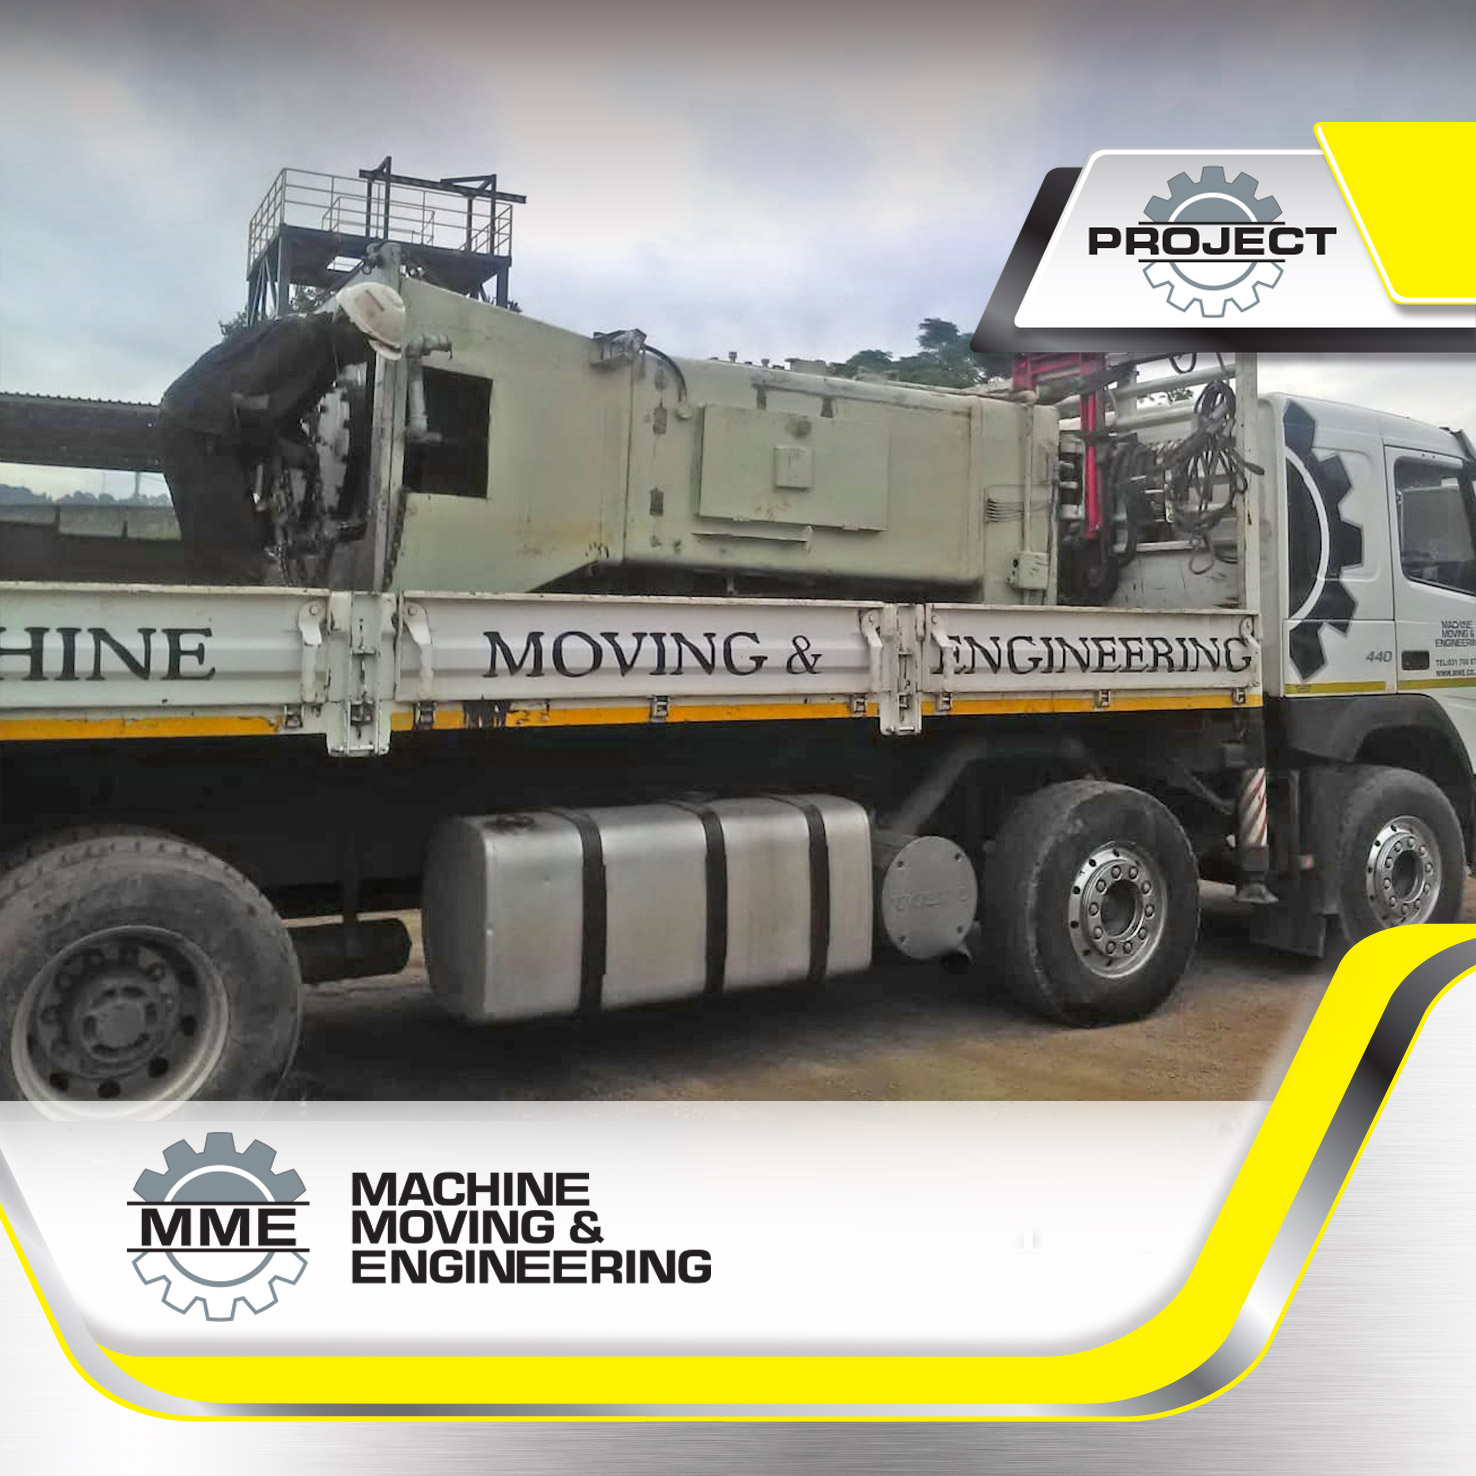 press removal mme-projects-mme-machine-moving-engineering-machinery-equipment-gauteng-kwazulu-natal-south-africa-truck-mounted-crane